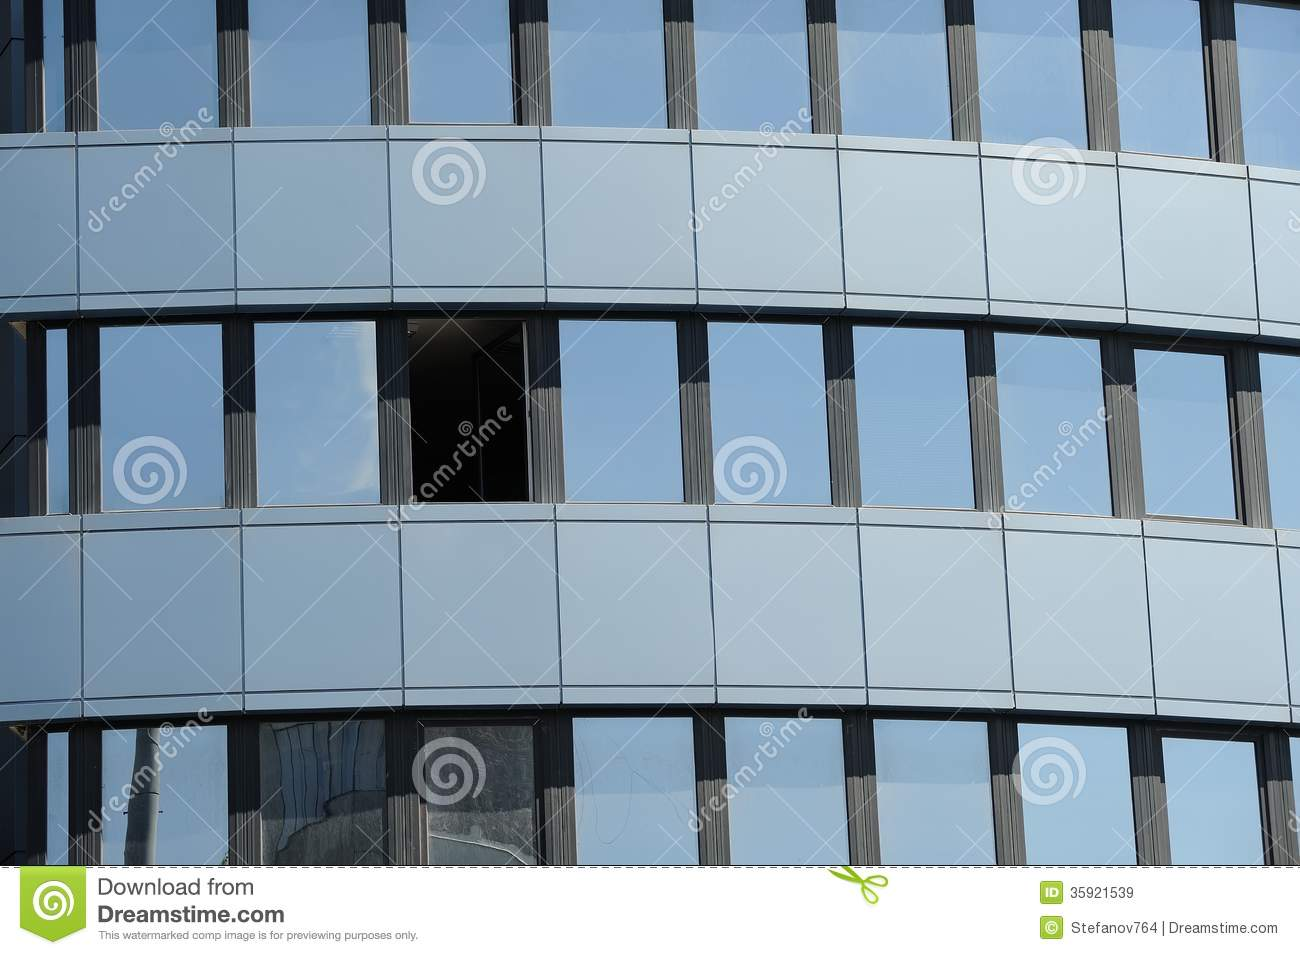 Glass Facade Of Office Building Royalty Free Stock Image: Office Building Royalty Free Stock Images